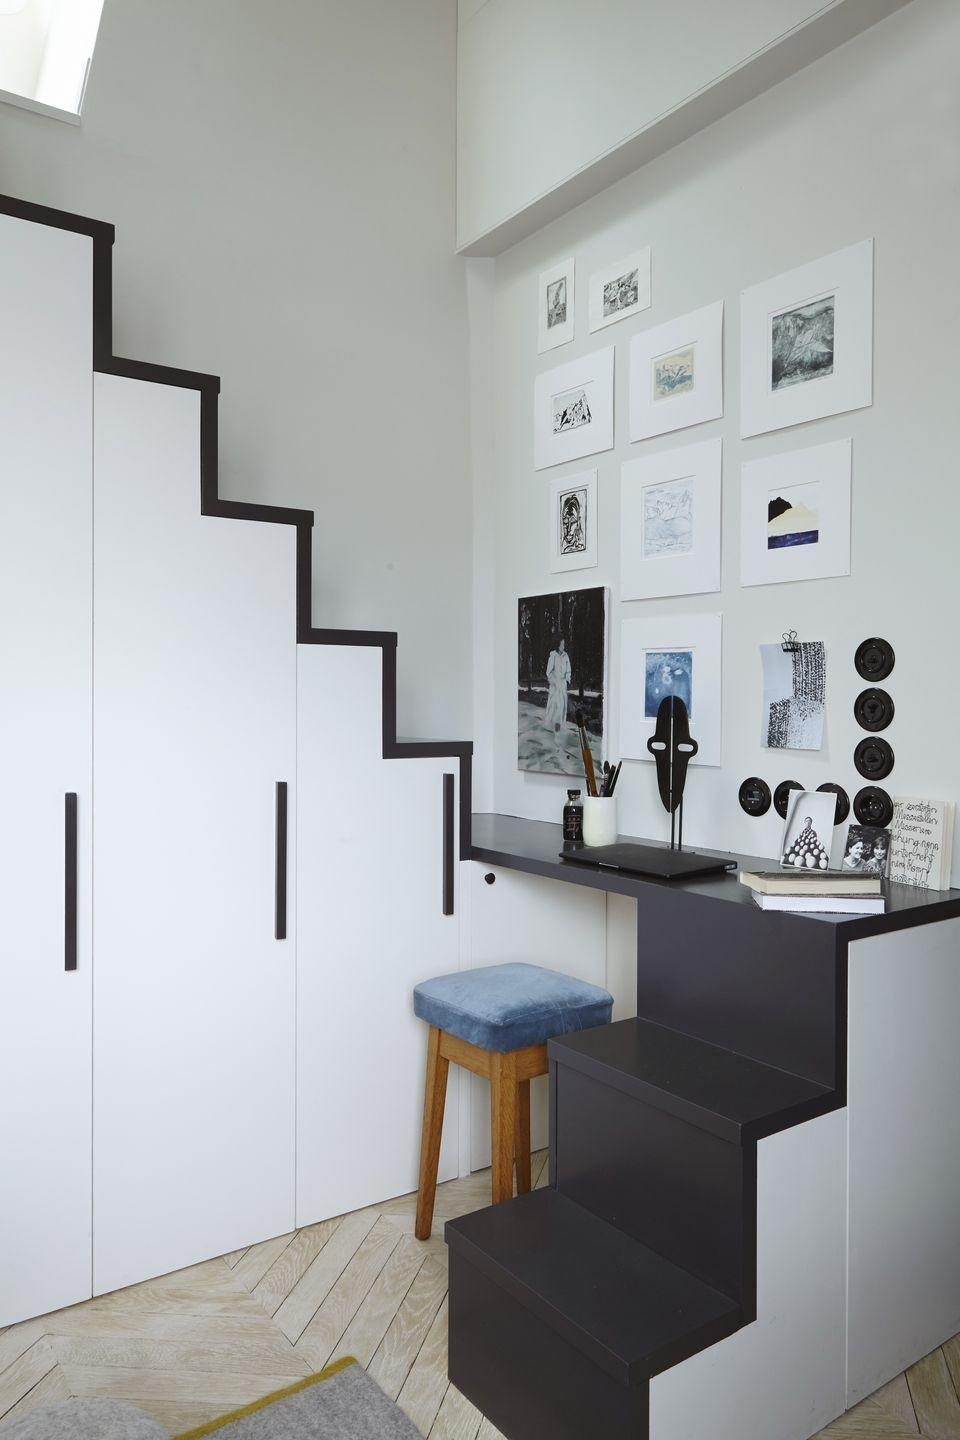 """<p>When space is at a premium, you sometimes have to think outside of the box. By raising the sleeping nook in this room onto a mezzanine and wrapping the staircase around, Paris-based interior designer Marianne Evennou has created a miniature desk space. Just be sure to tidy everything away before climbing up to bed. <a href=""""http://www.marianne-evennou.com/"""" rel=""""nofollow noopener"""" target=""""_blank"""" data-ylk=""""slk:marianne-evennou.com"""" class=""""link rapid-noclick-resp"""">marianne-evennou.com</a></p>"""